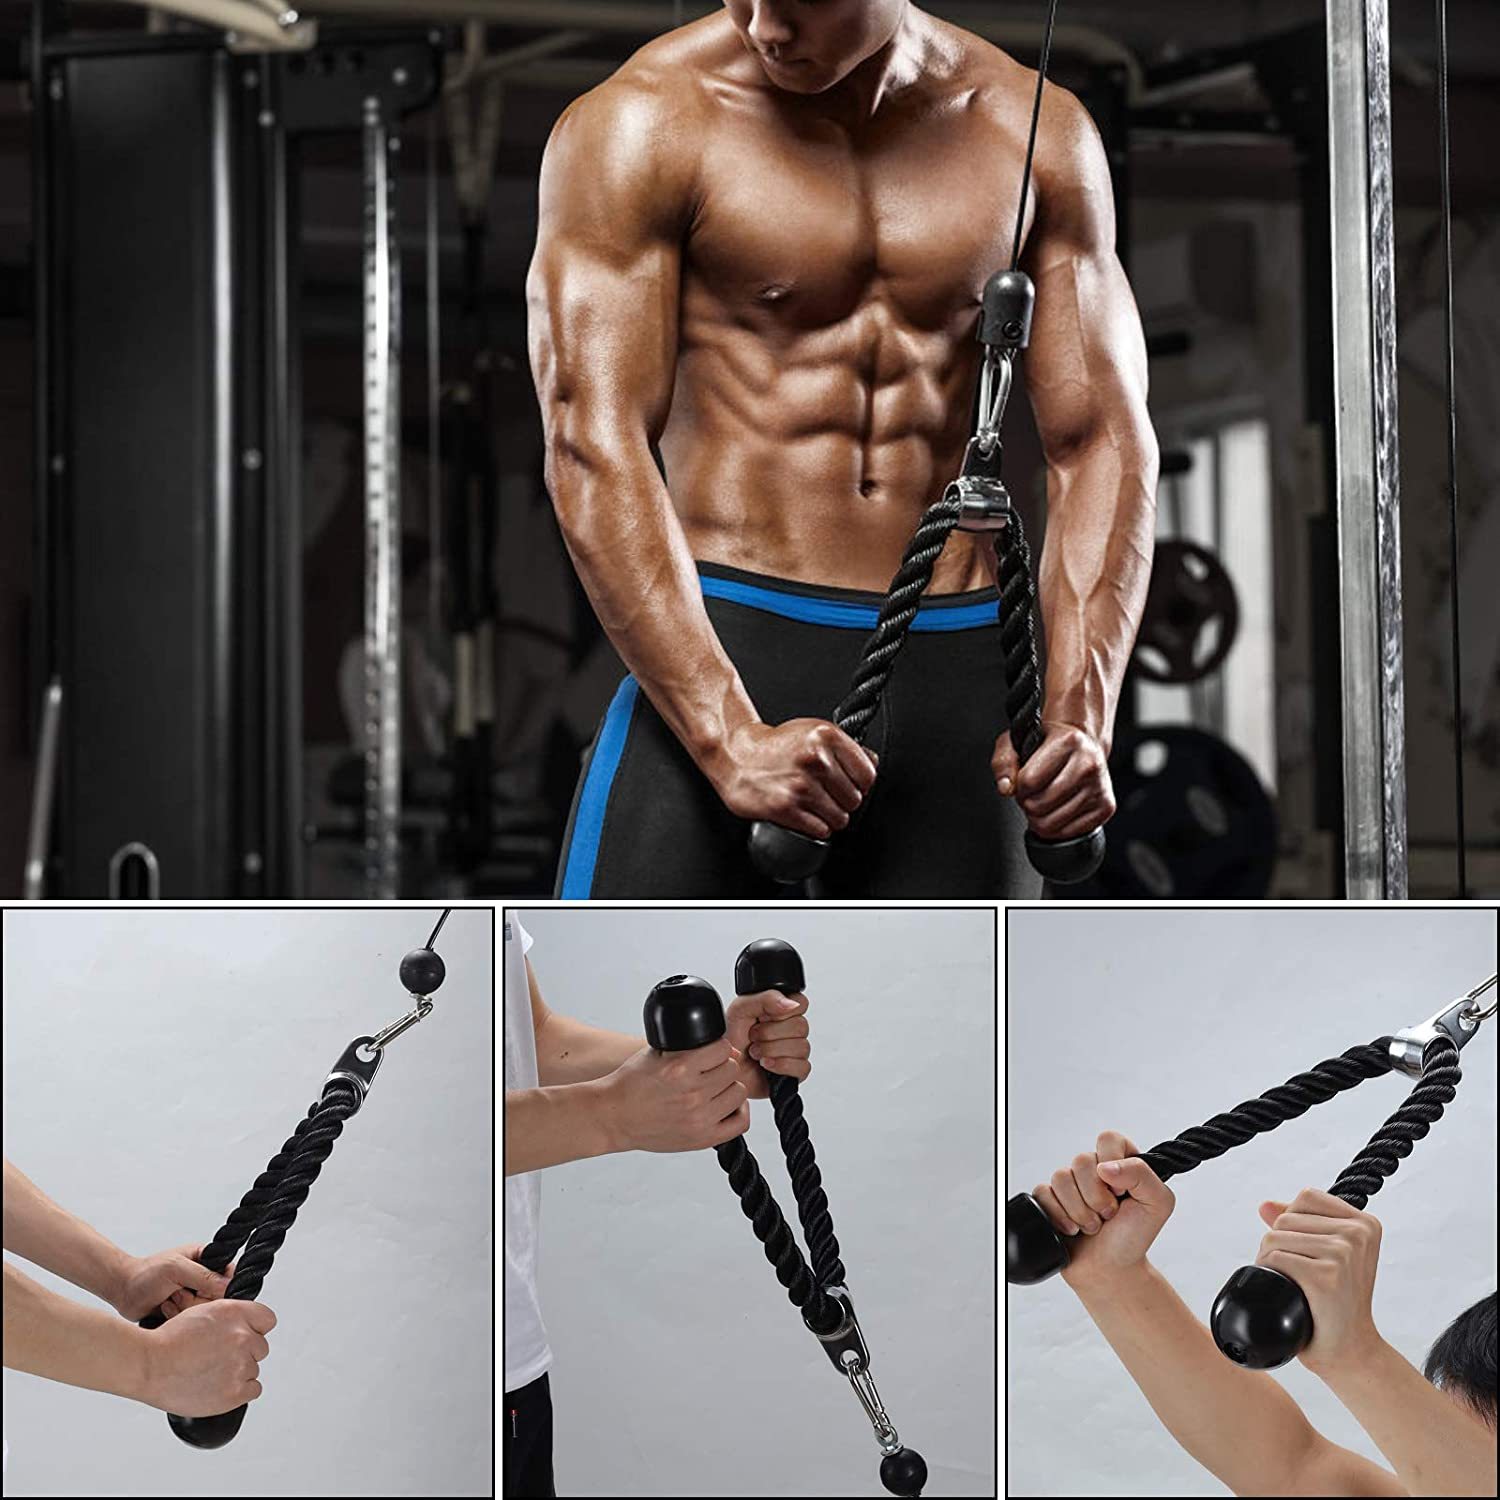 Biceps Tricep Extensions Upgraded 12 Packs Forearm Wrist Trainer Roller Cable Pulley System Home Gym Equipment Workout for Lat Pull Downs PELLOR DIY Pulley Cable Machine Attachment System